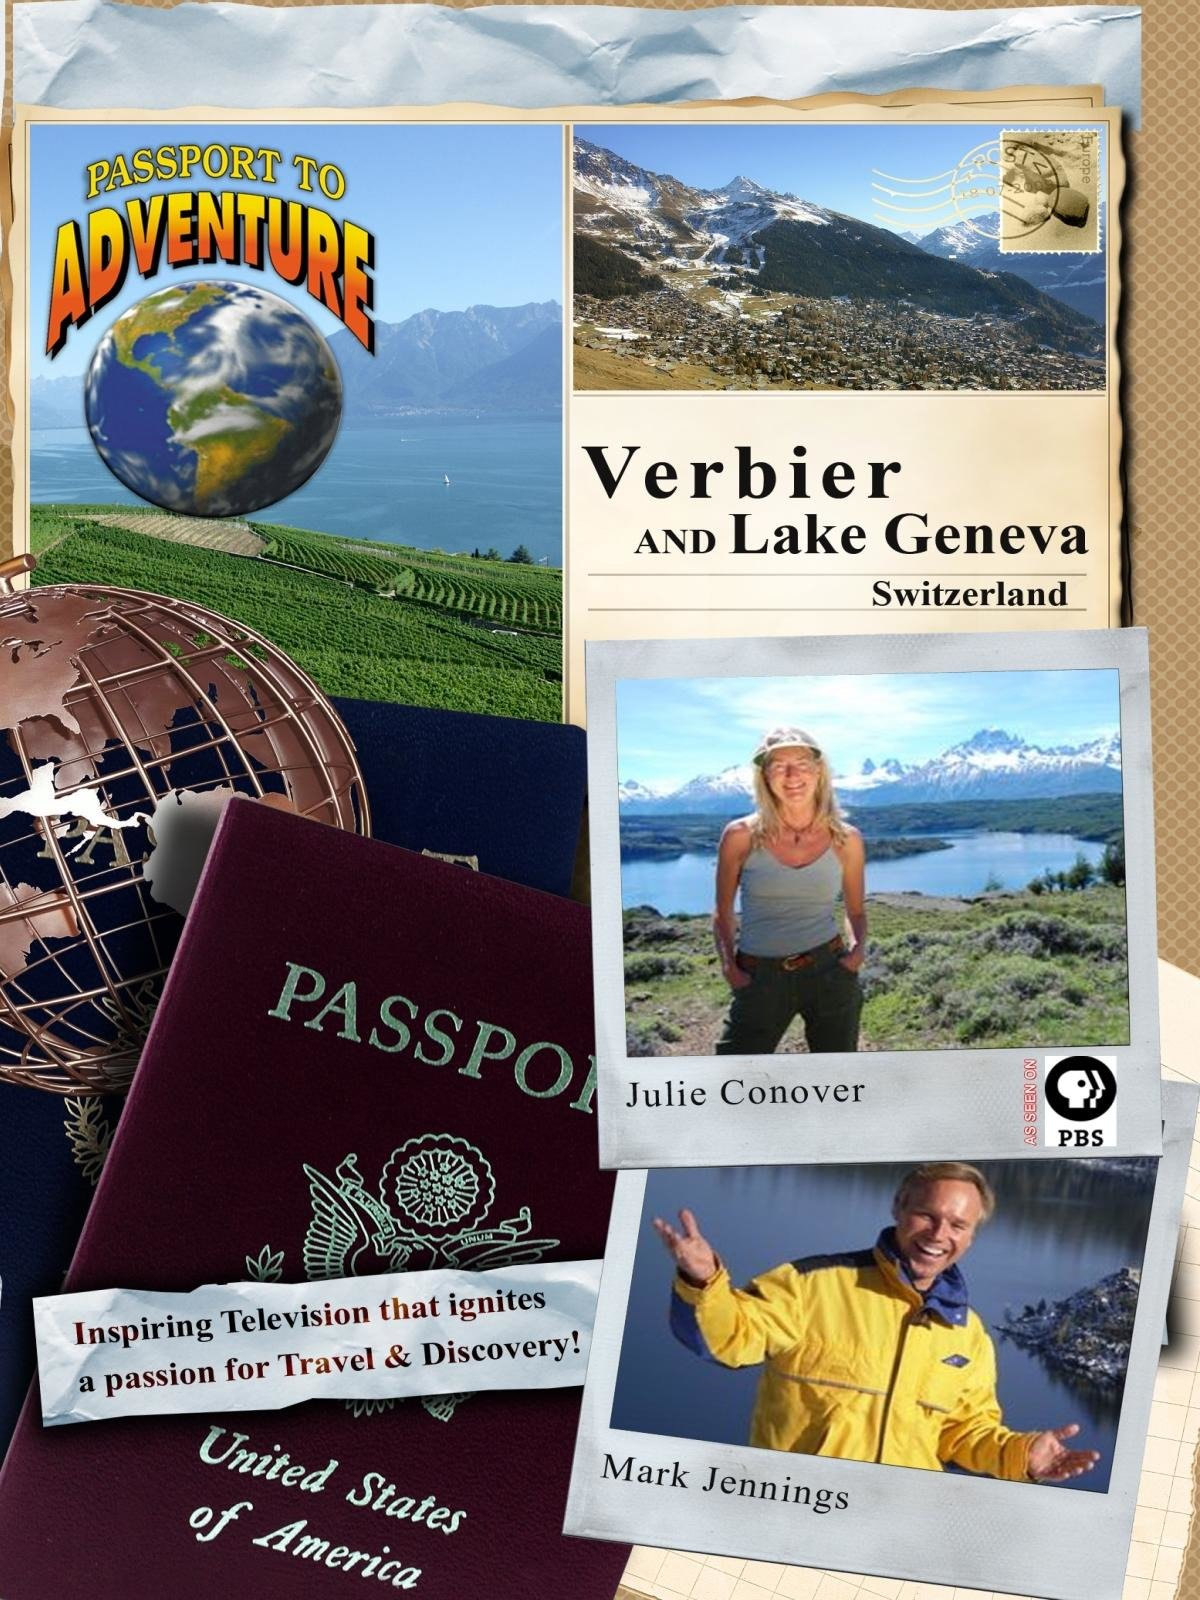 Passport to Adventure: Verbier and Lake Geneva Switzerland